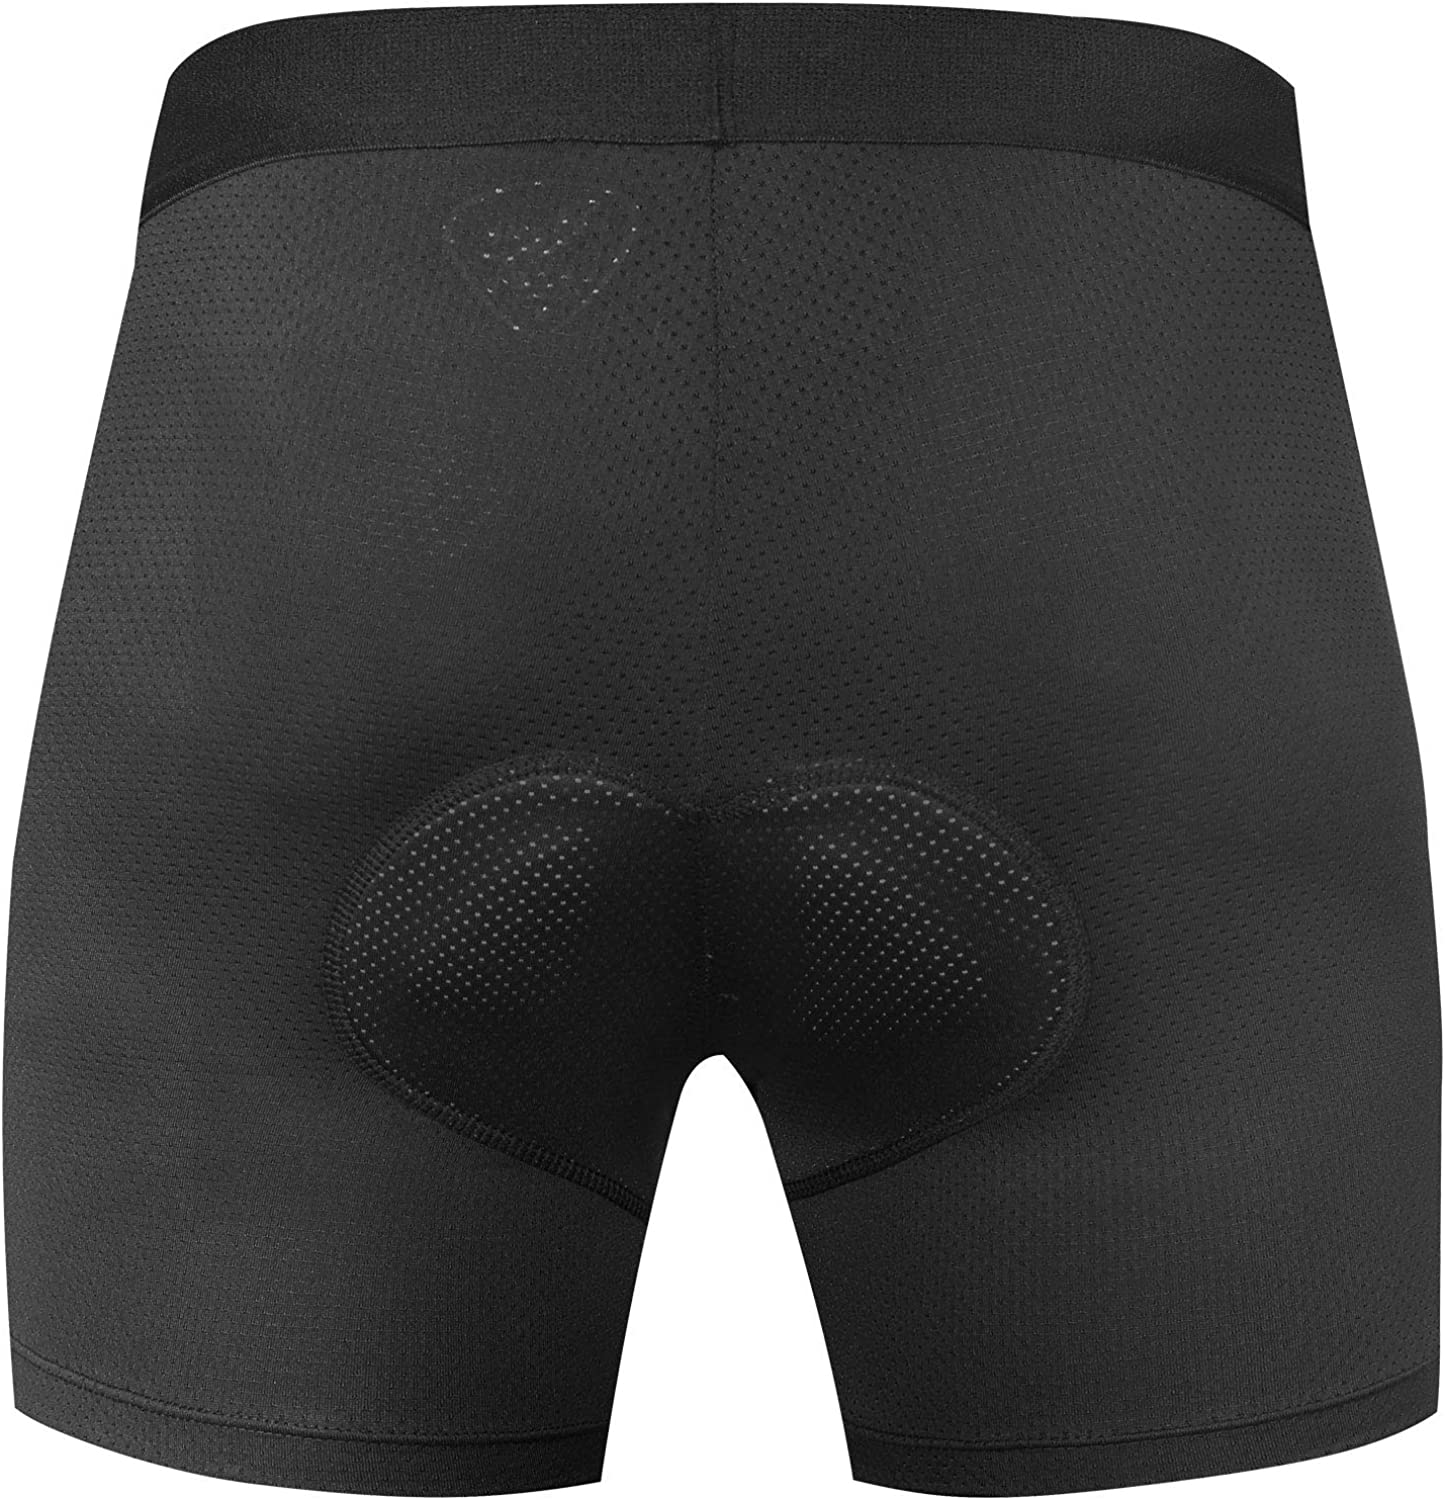 NOOYME Women Bike Underwear with 3D Gel Padded for Cycling, Spin Bicycle Briefs MTB Underwear: Clothing